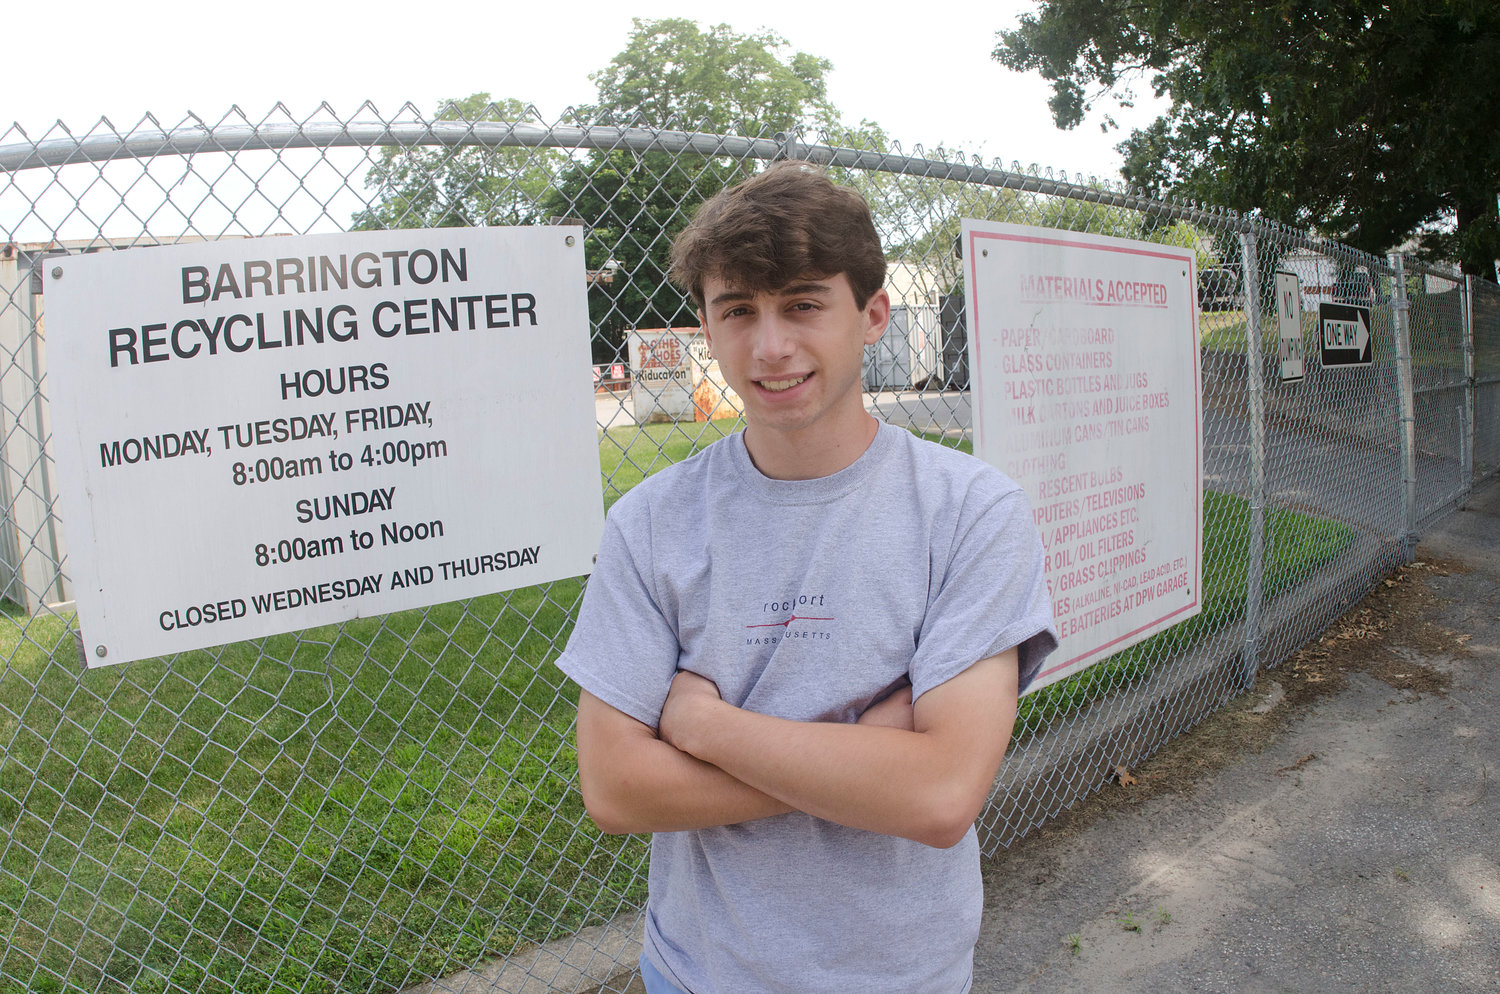 Barrington's Alex Caizzi, a rising junior at the high school, is completing a summer internship focused on improving residents' recycling efforts in town.